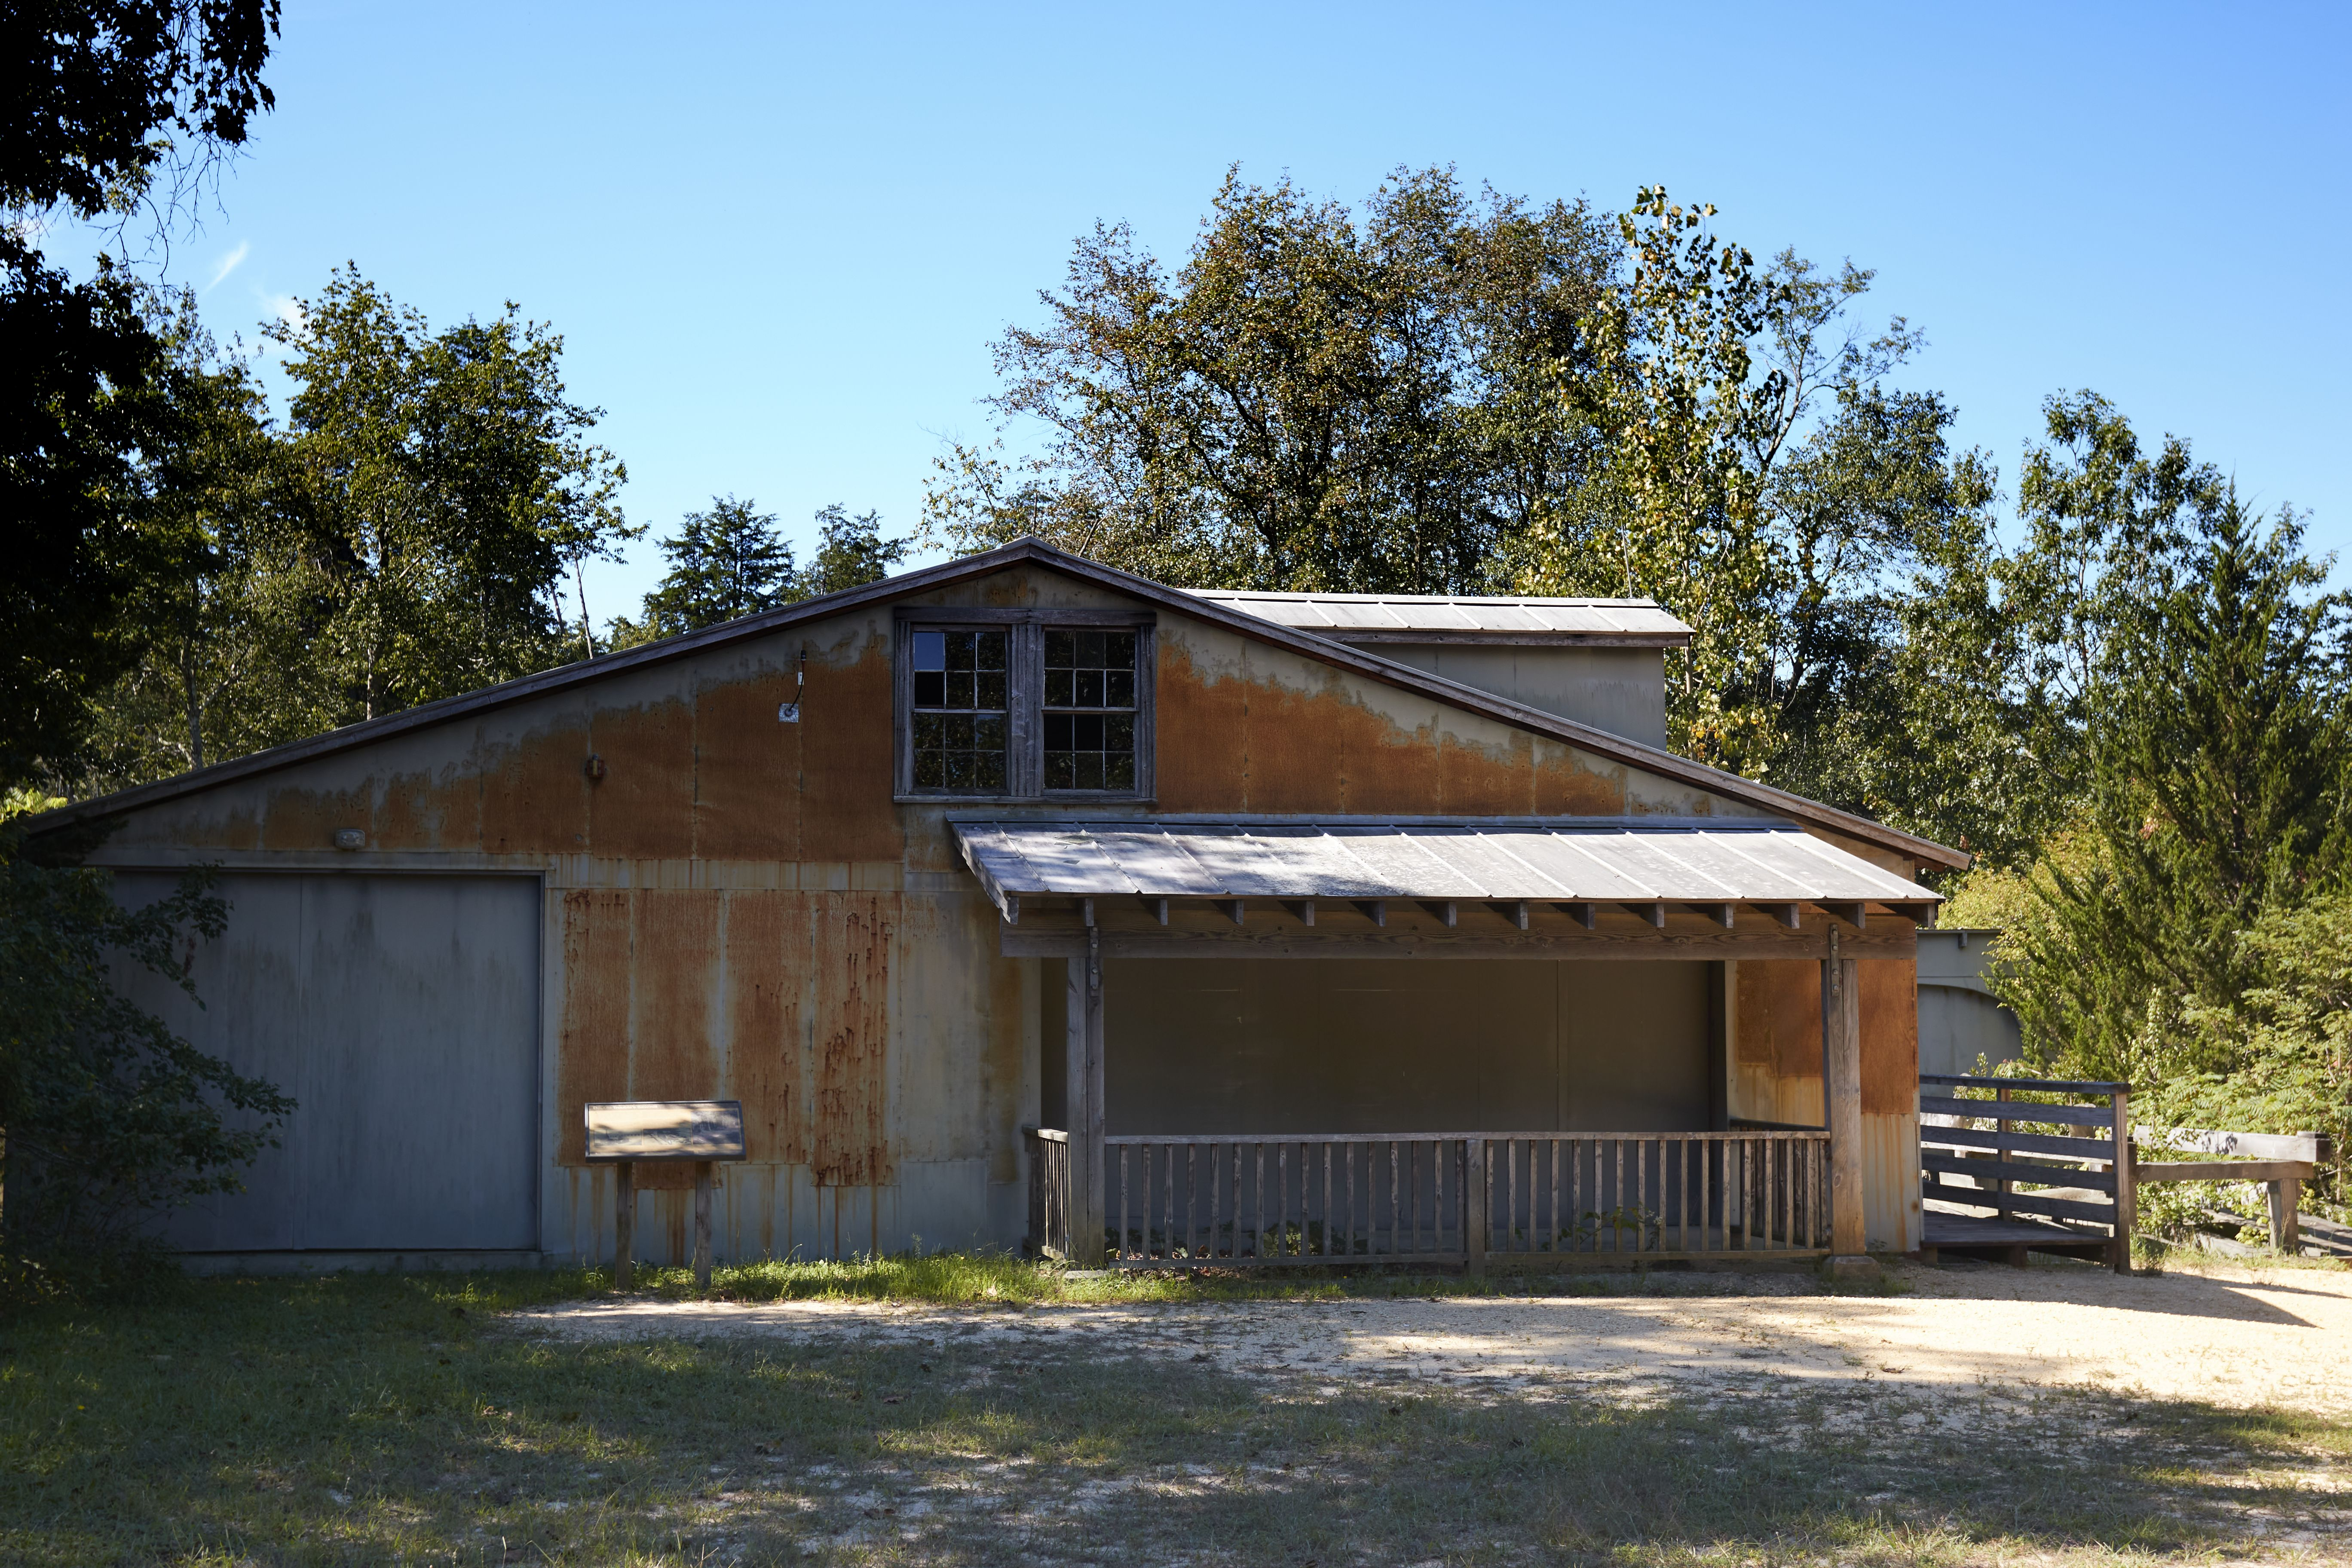 Exterior of Sawmill.